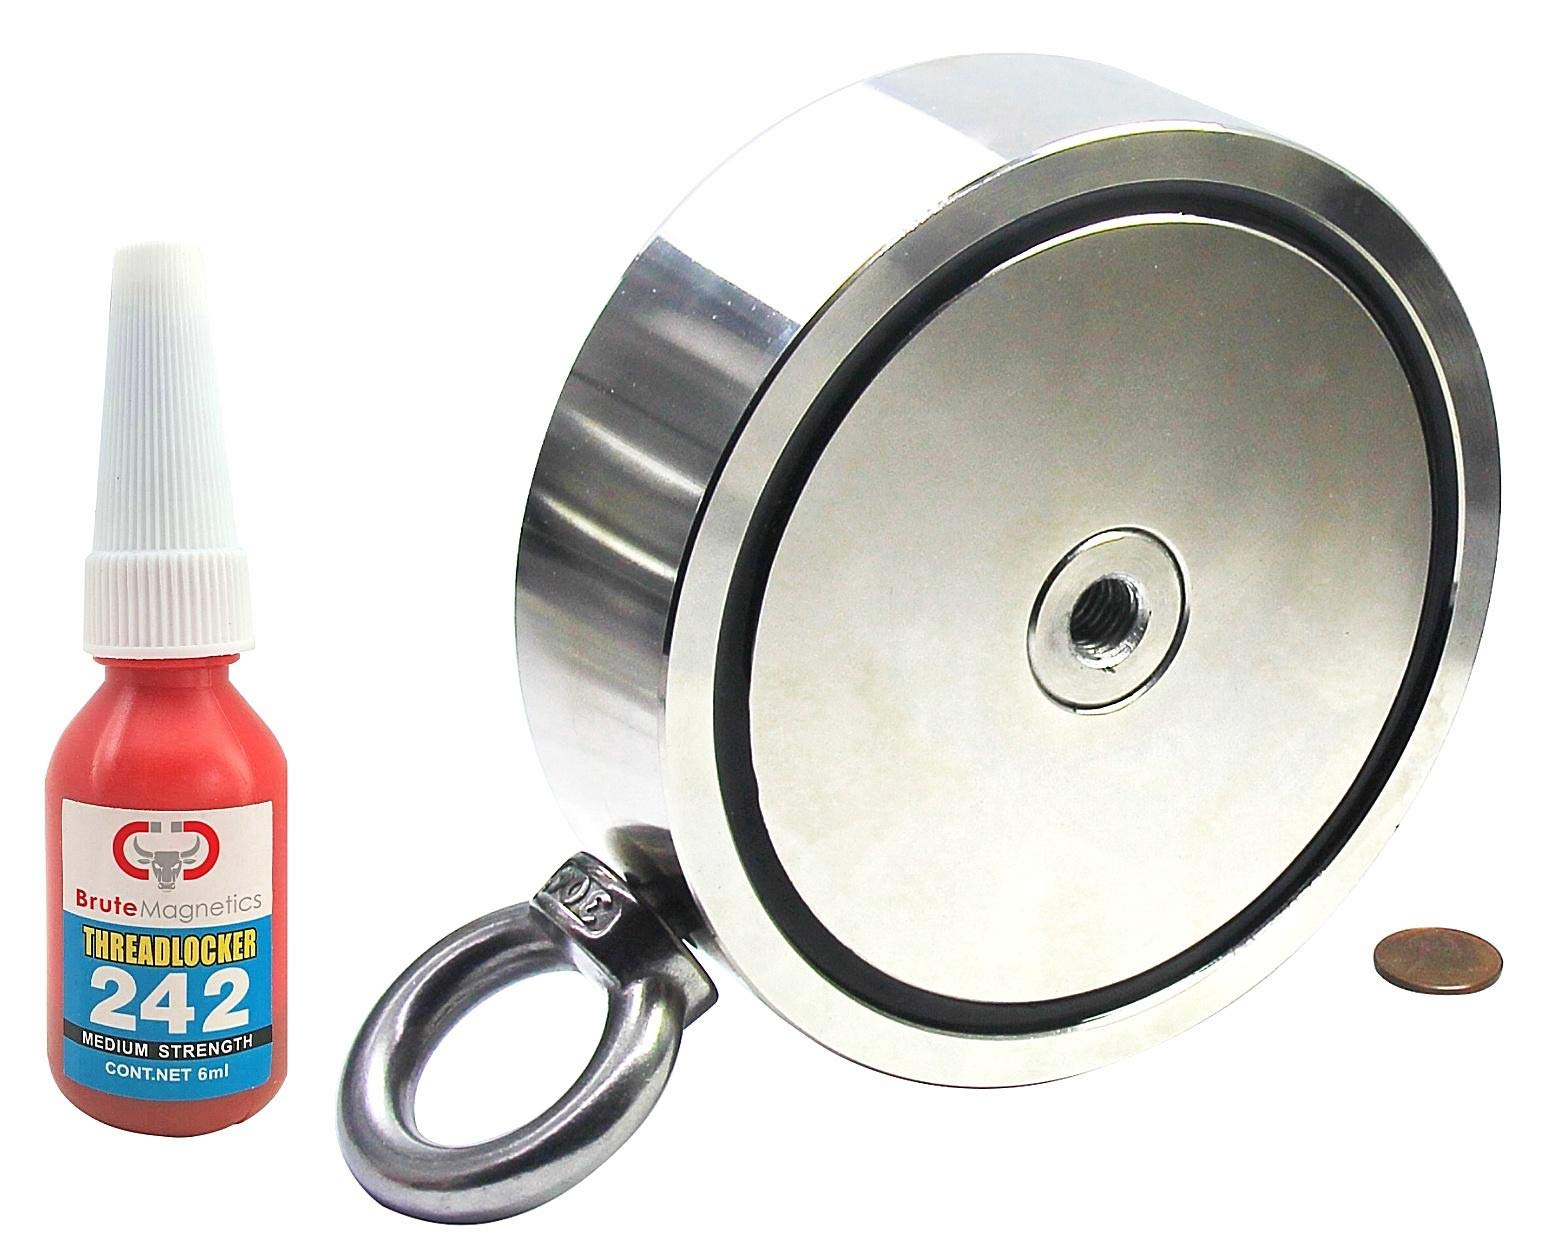 3,600 LBS (Combined) Pulling Force Double Sided Round Neodymium Magnet with Eyebolt, 5.31'' Diameter Retrieving Magnet